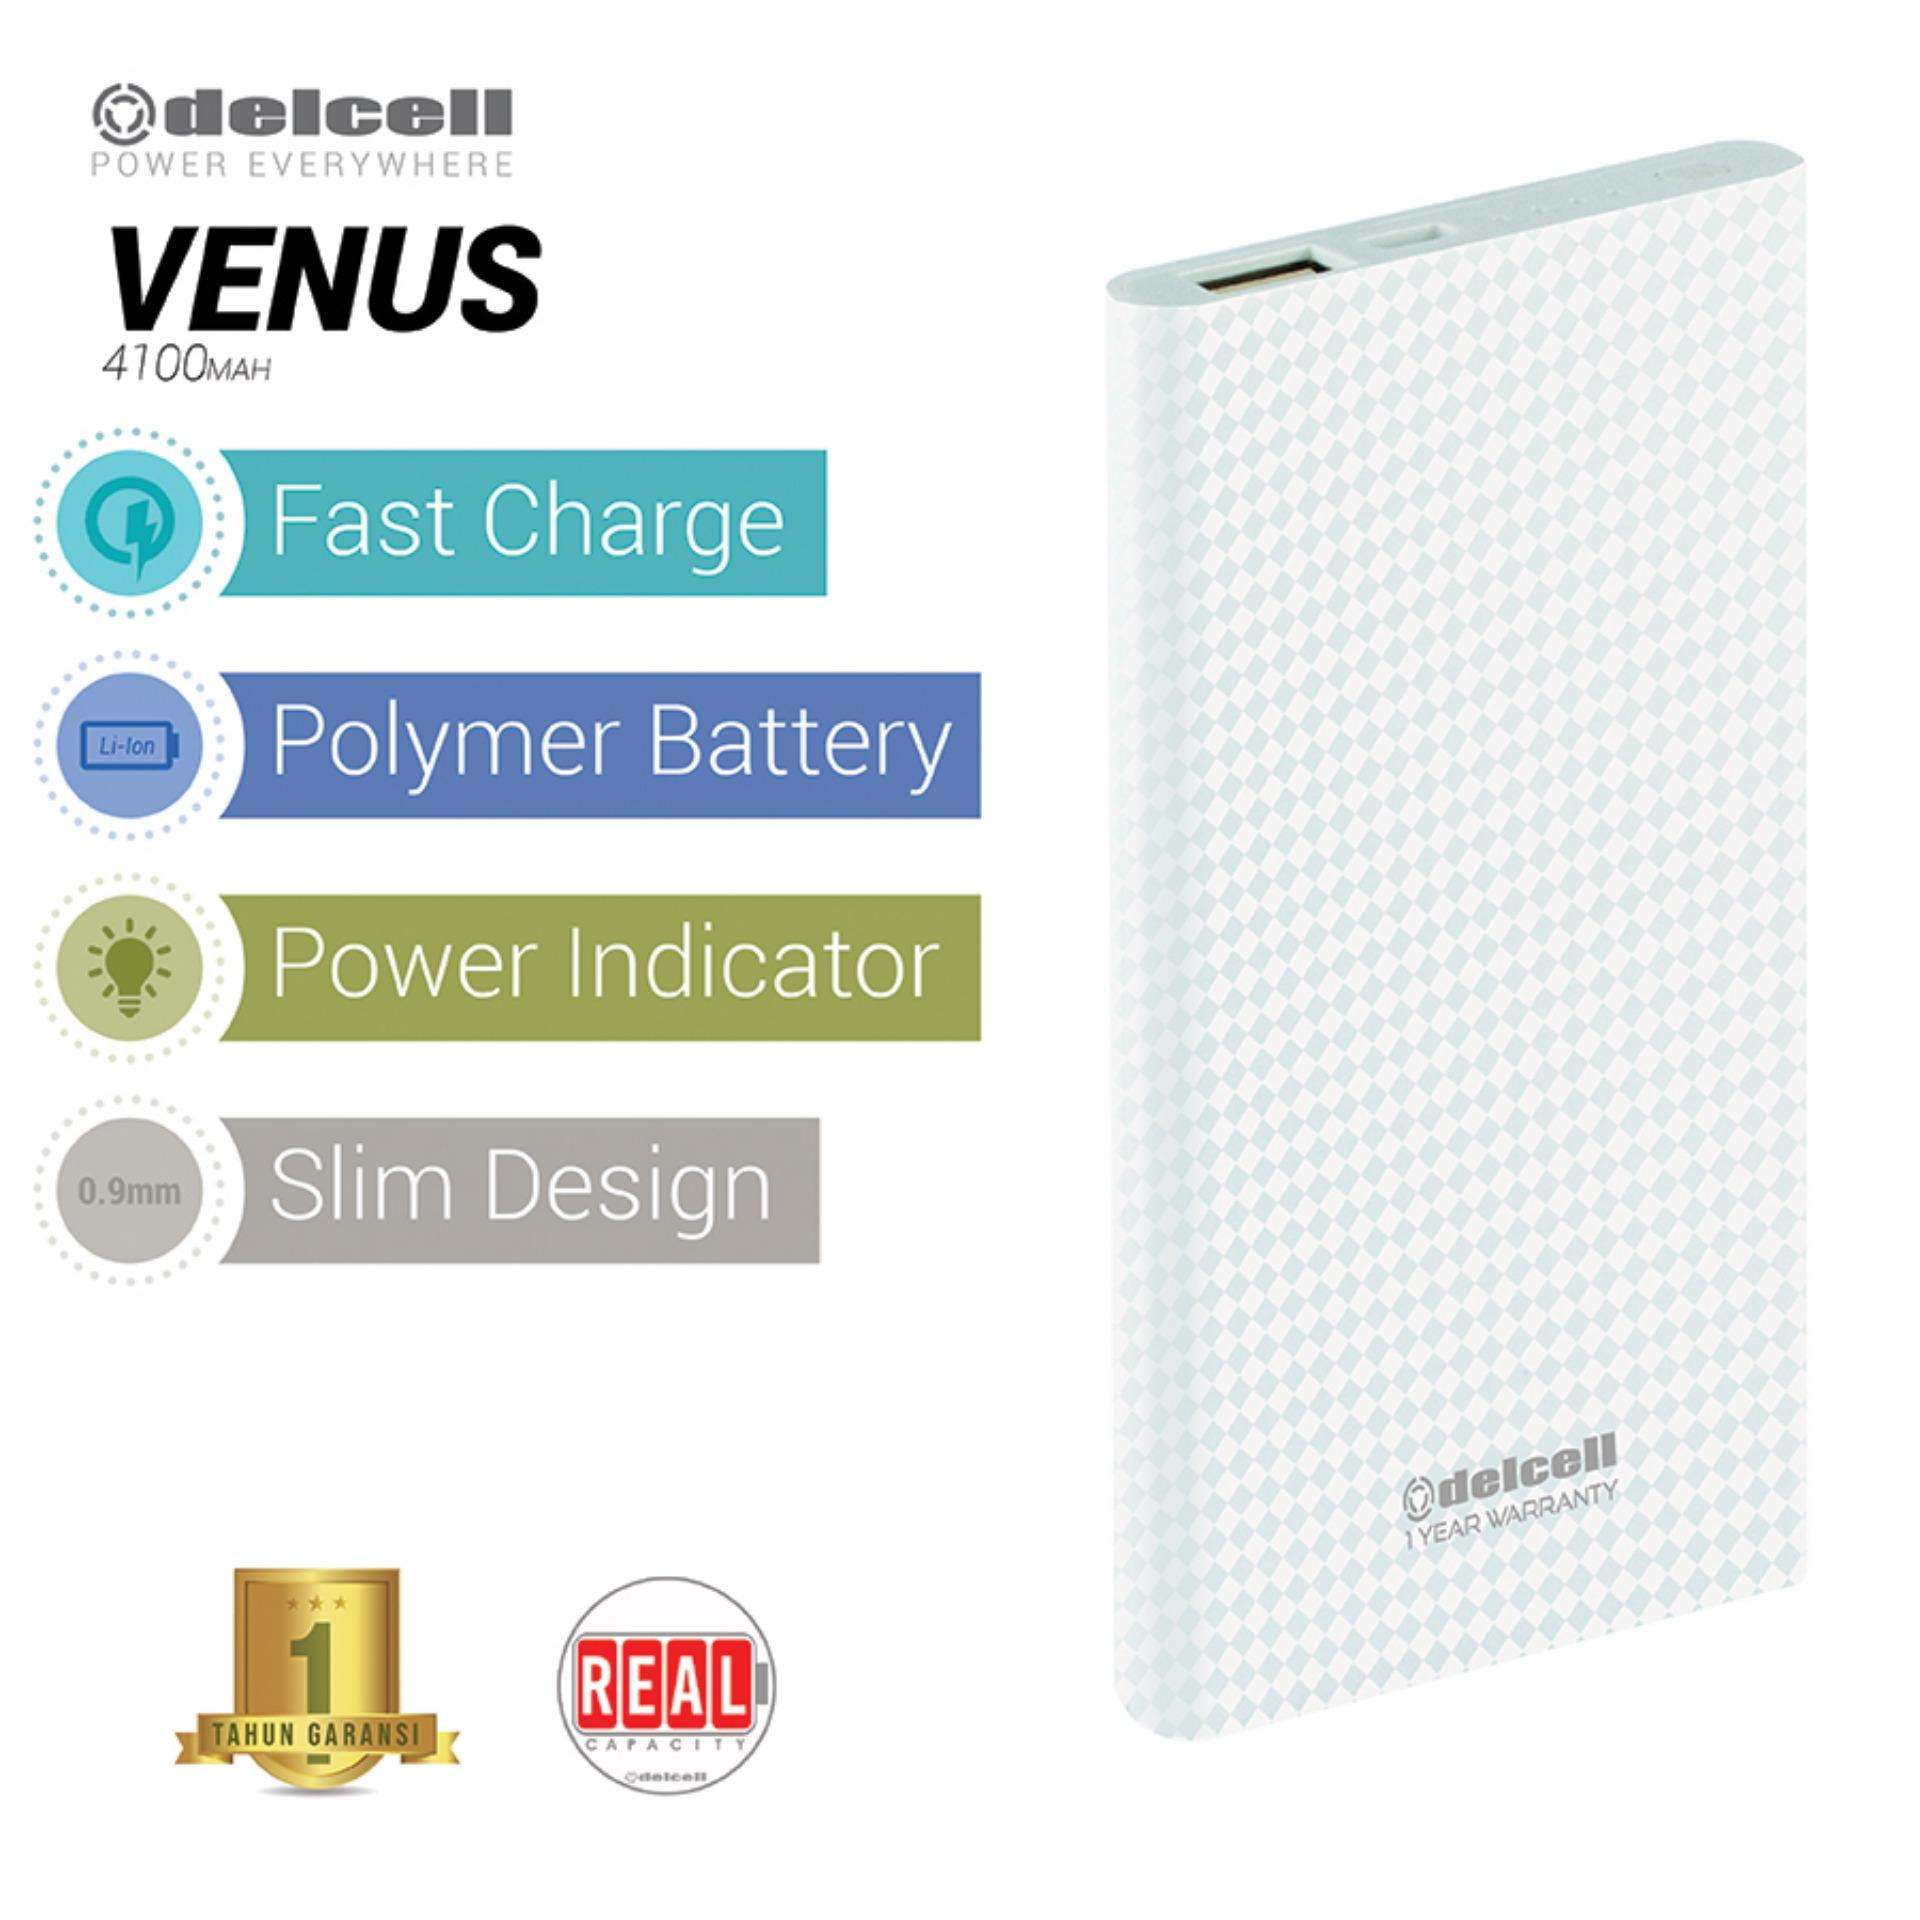 Delcell 4100mAh Powerbank VENUS Real Capacity Slim Power Bank Fast Charging Polymer Battery Garansi Resmi 1